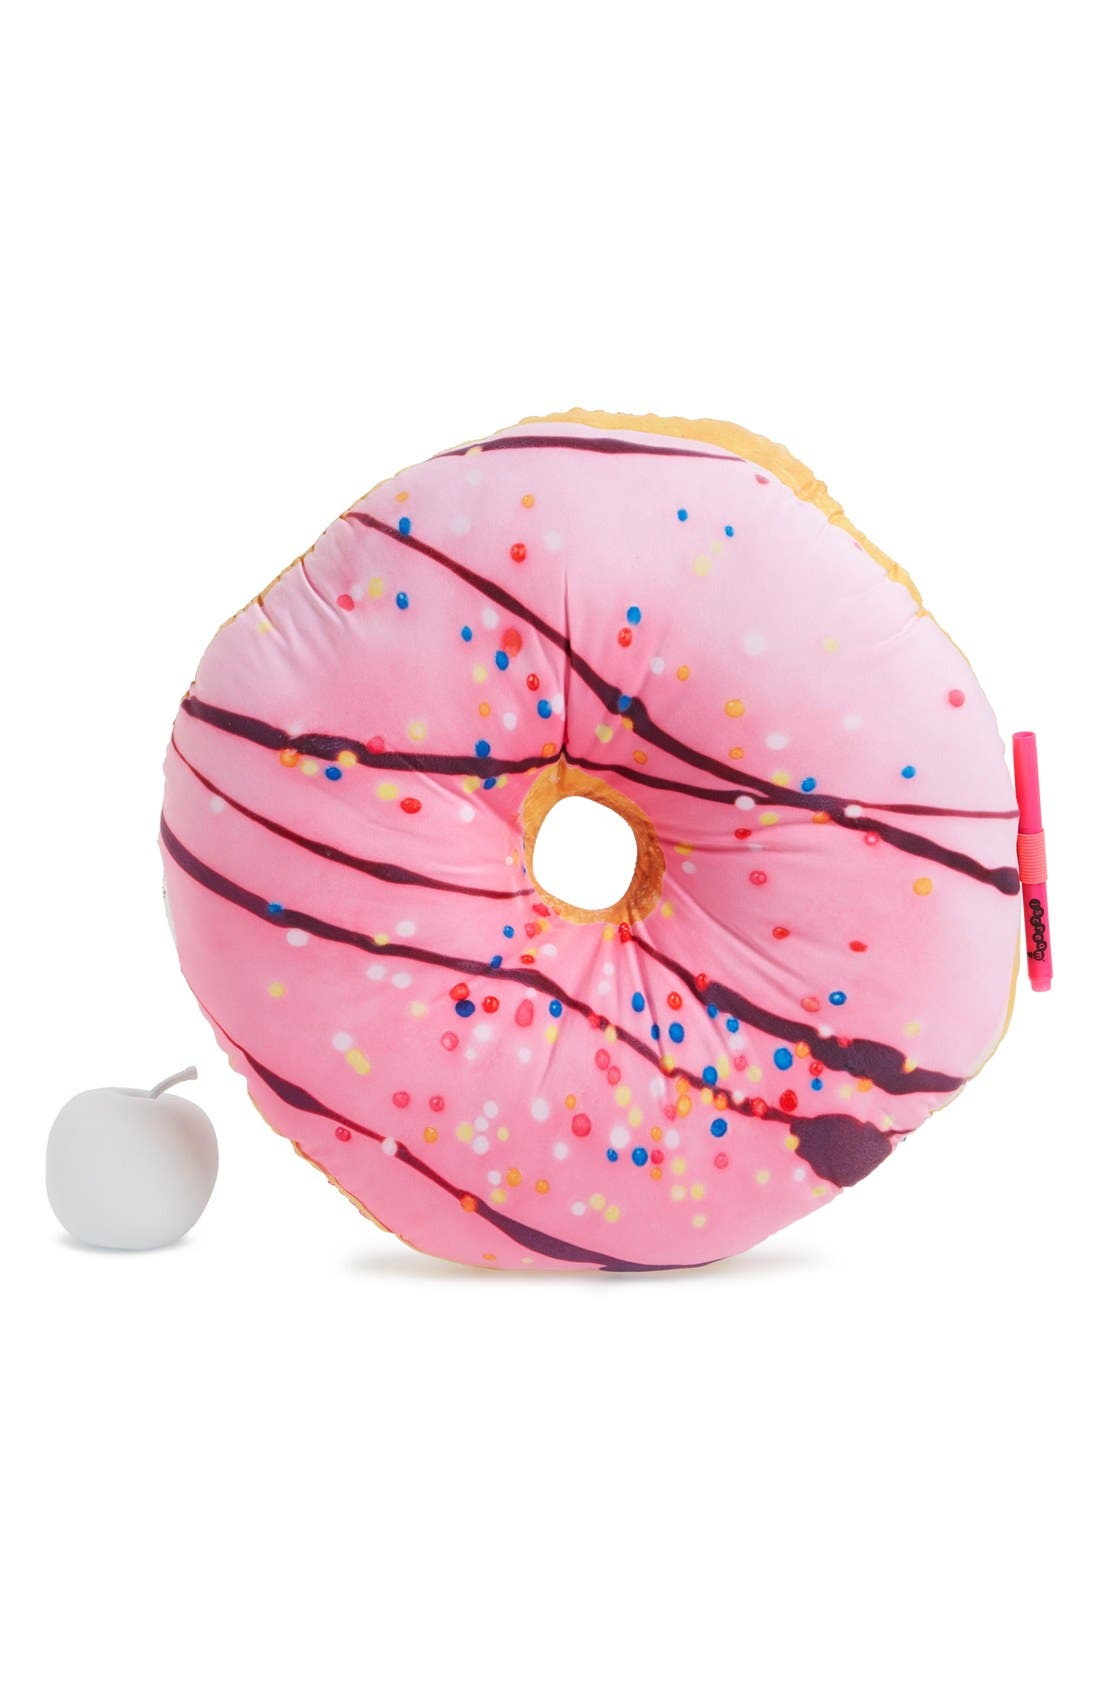 Main Image - Iscream Rainbow Sprinkles Donut Scented Autograph Pillow